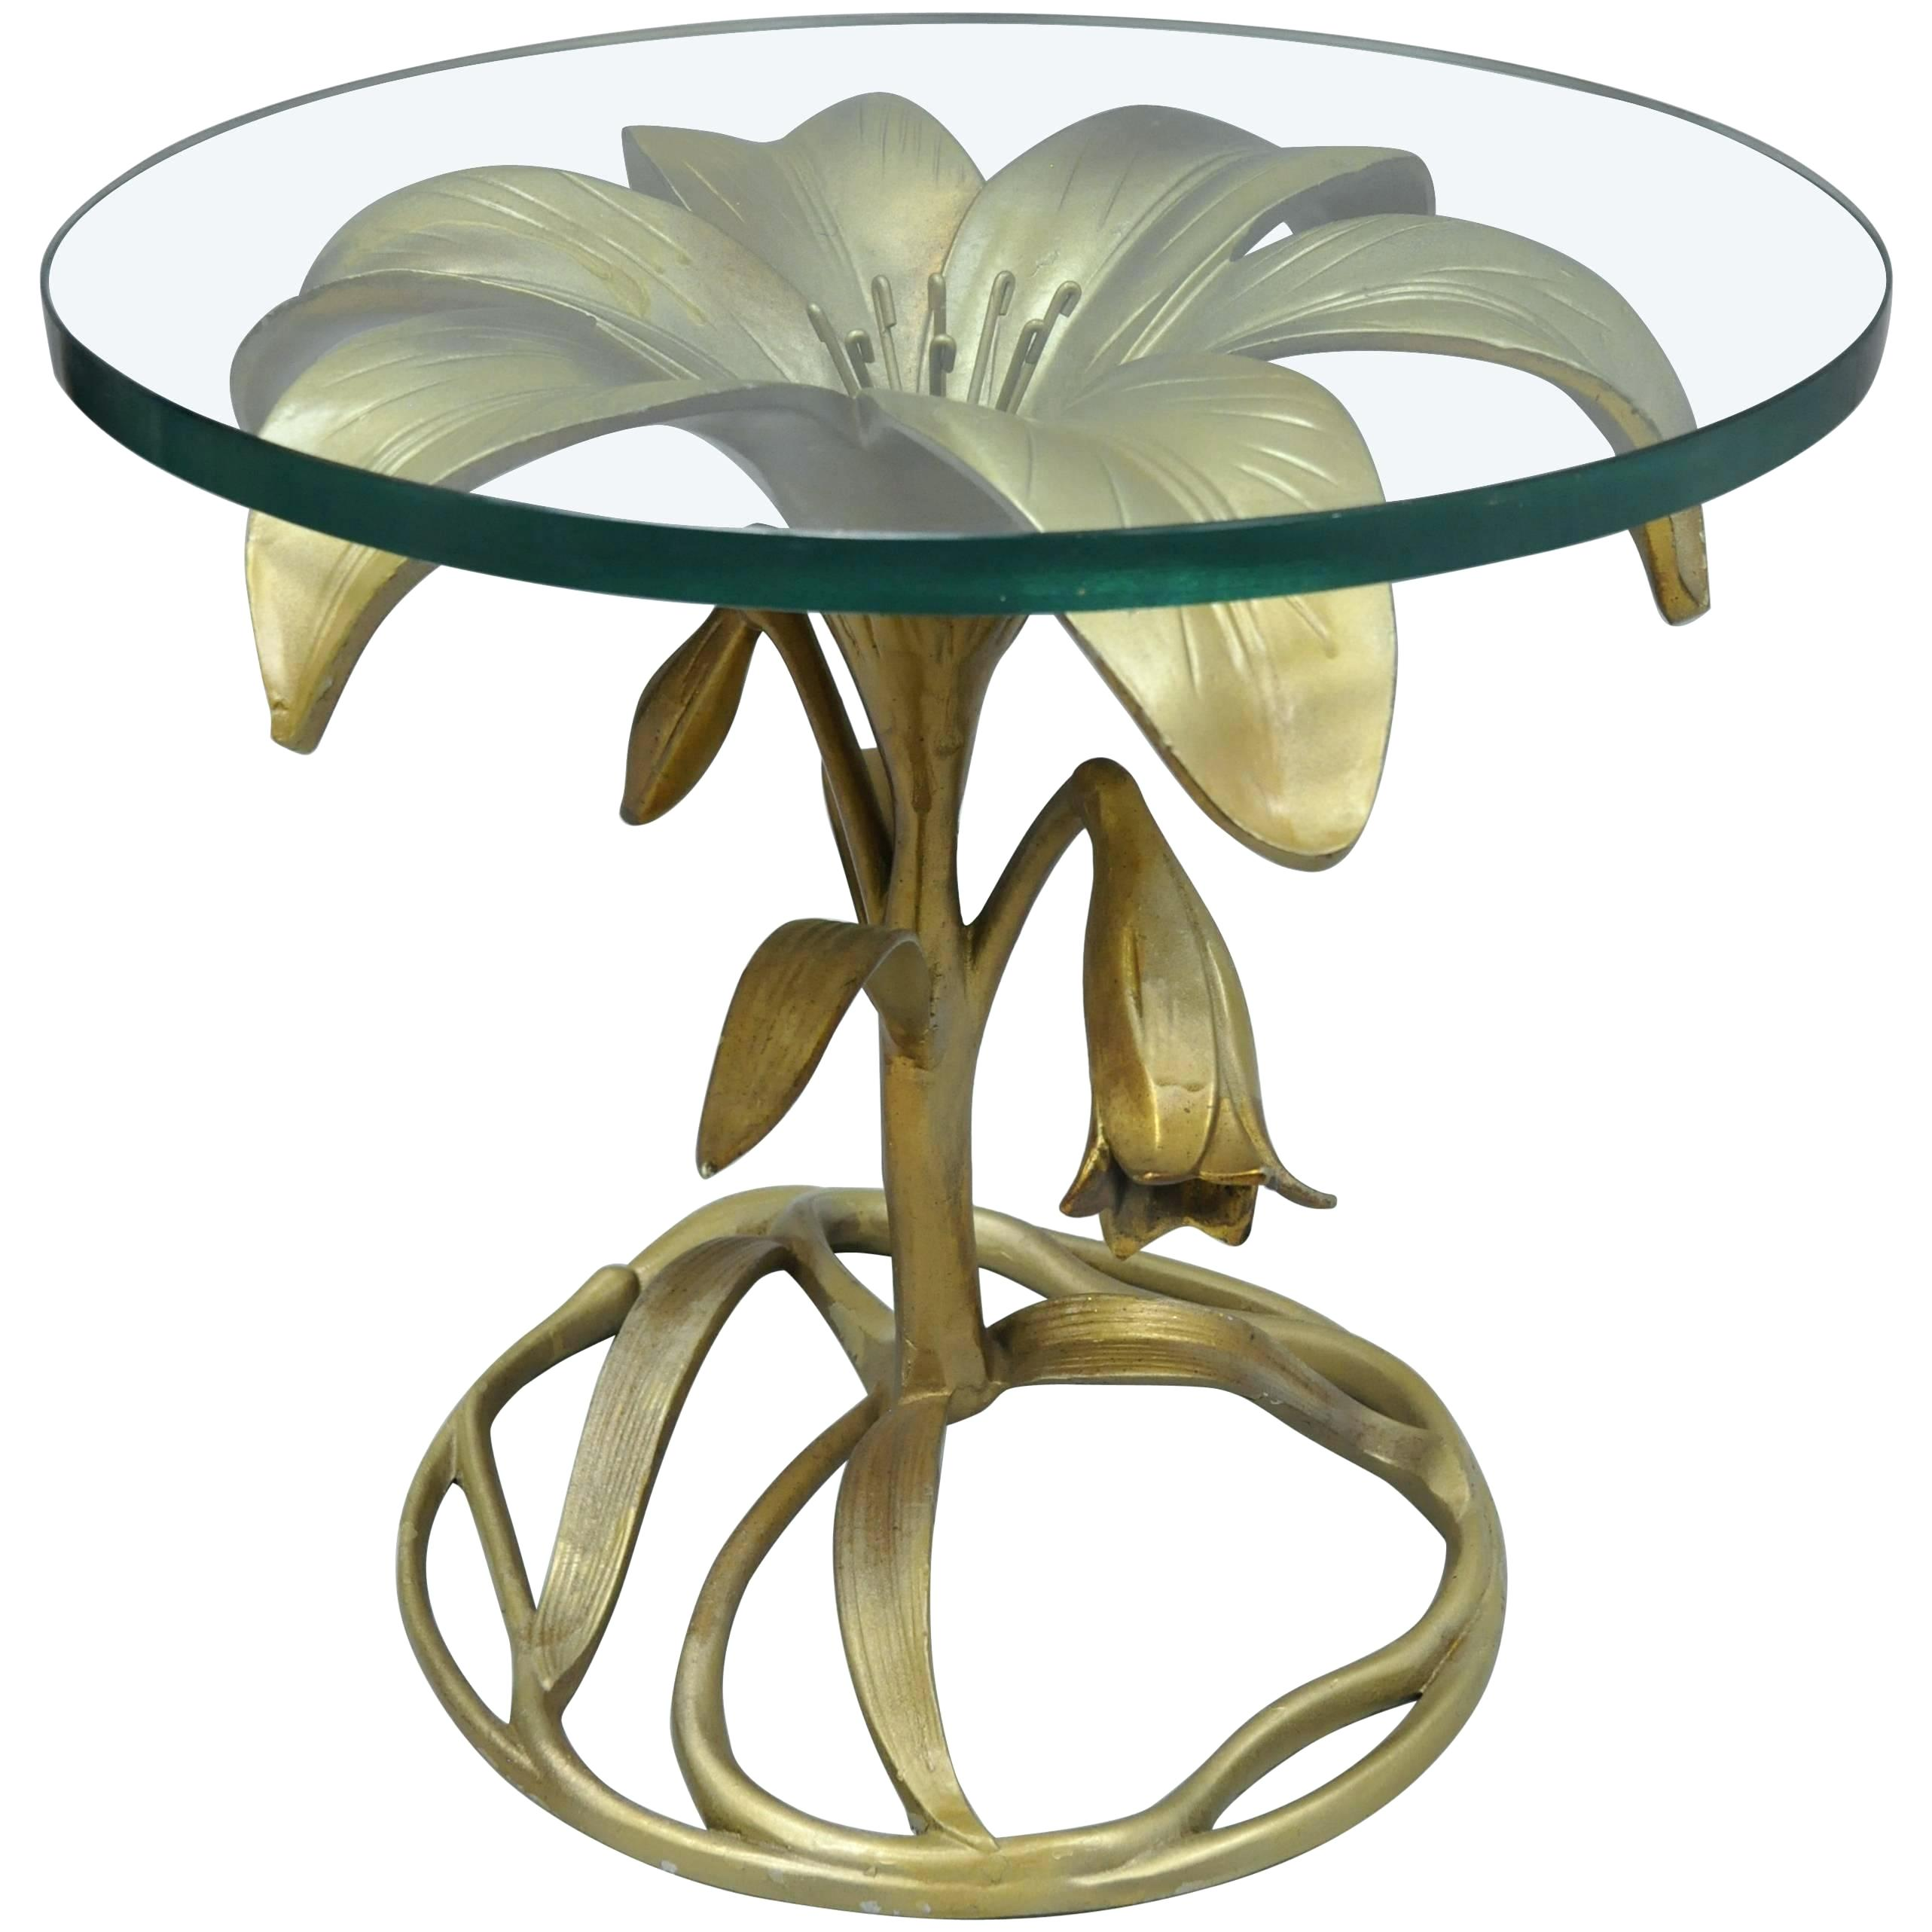 round glass top end table court lily leaf gold flower side cast aluminum for replacement rectangular outdoor patio tables whole lazy boy furniture dining wooden legs piece